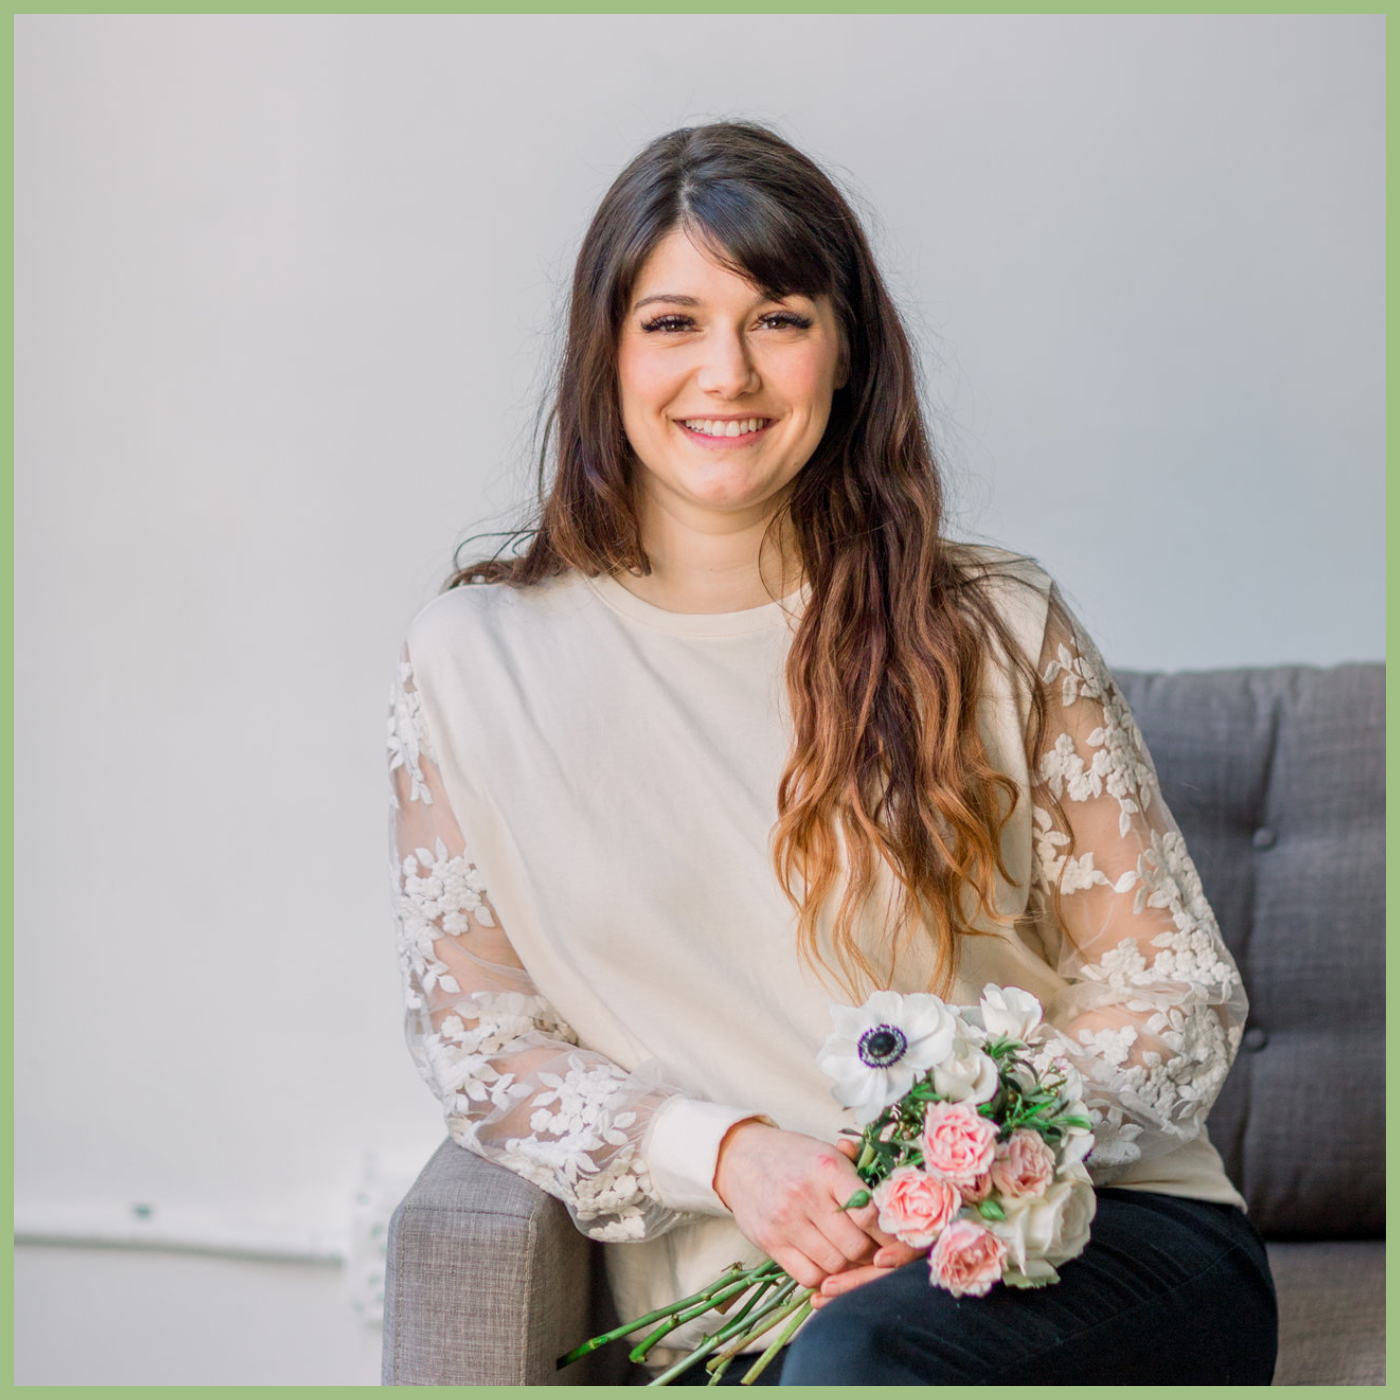 Girl seating on the couch holding bouquet of flowers and smiling Gina Thresher